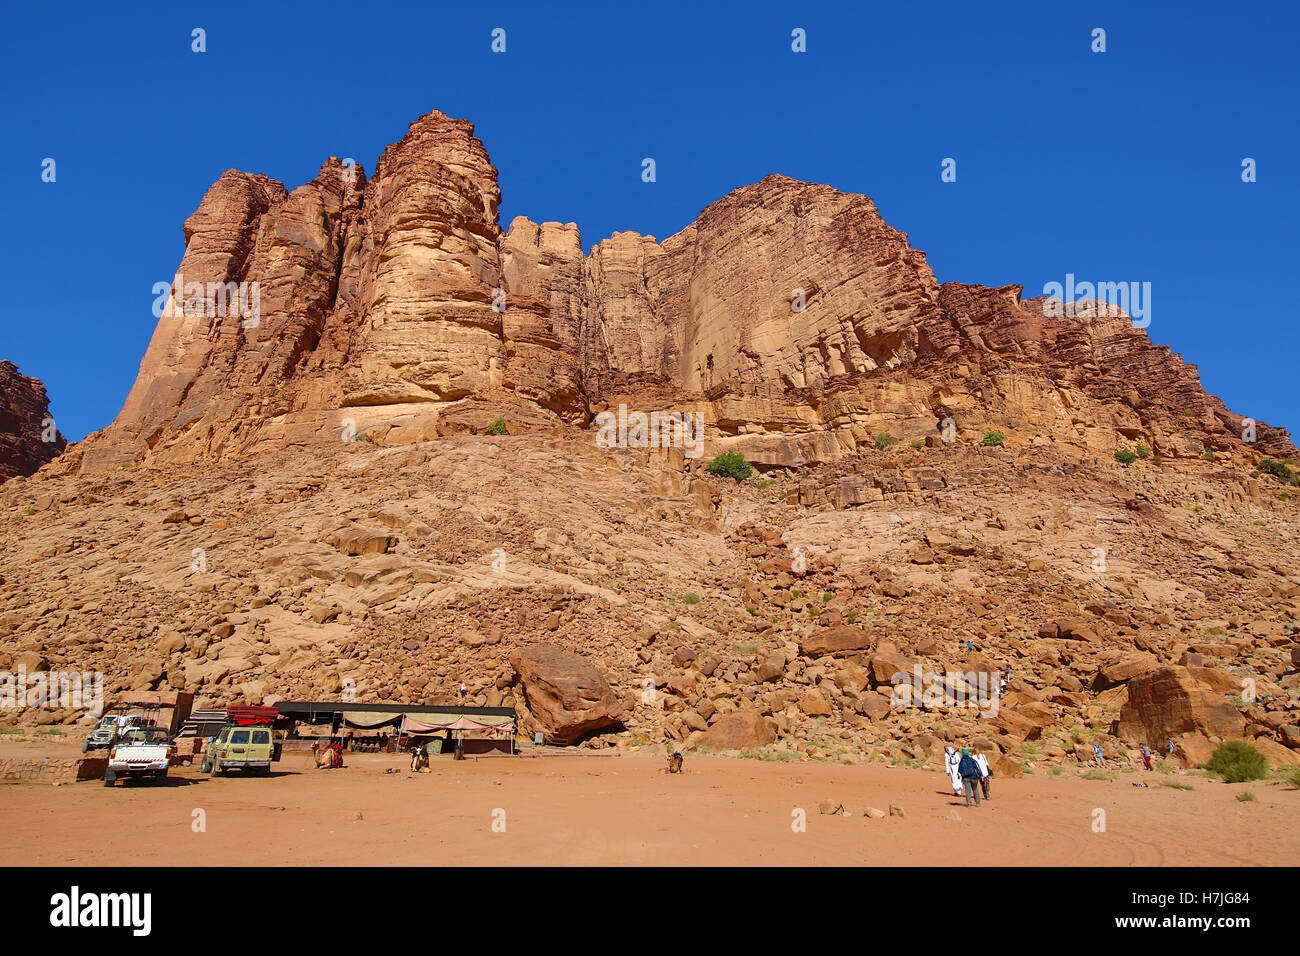 Rock formations of Lawrence's Spring in the desert at Wadi Rum, Jordan - Stock Image